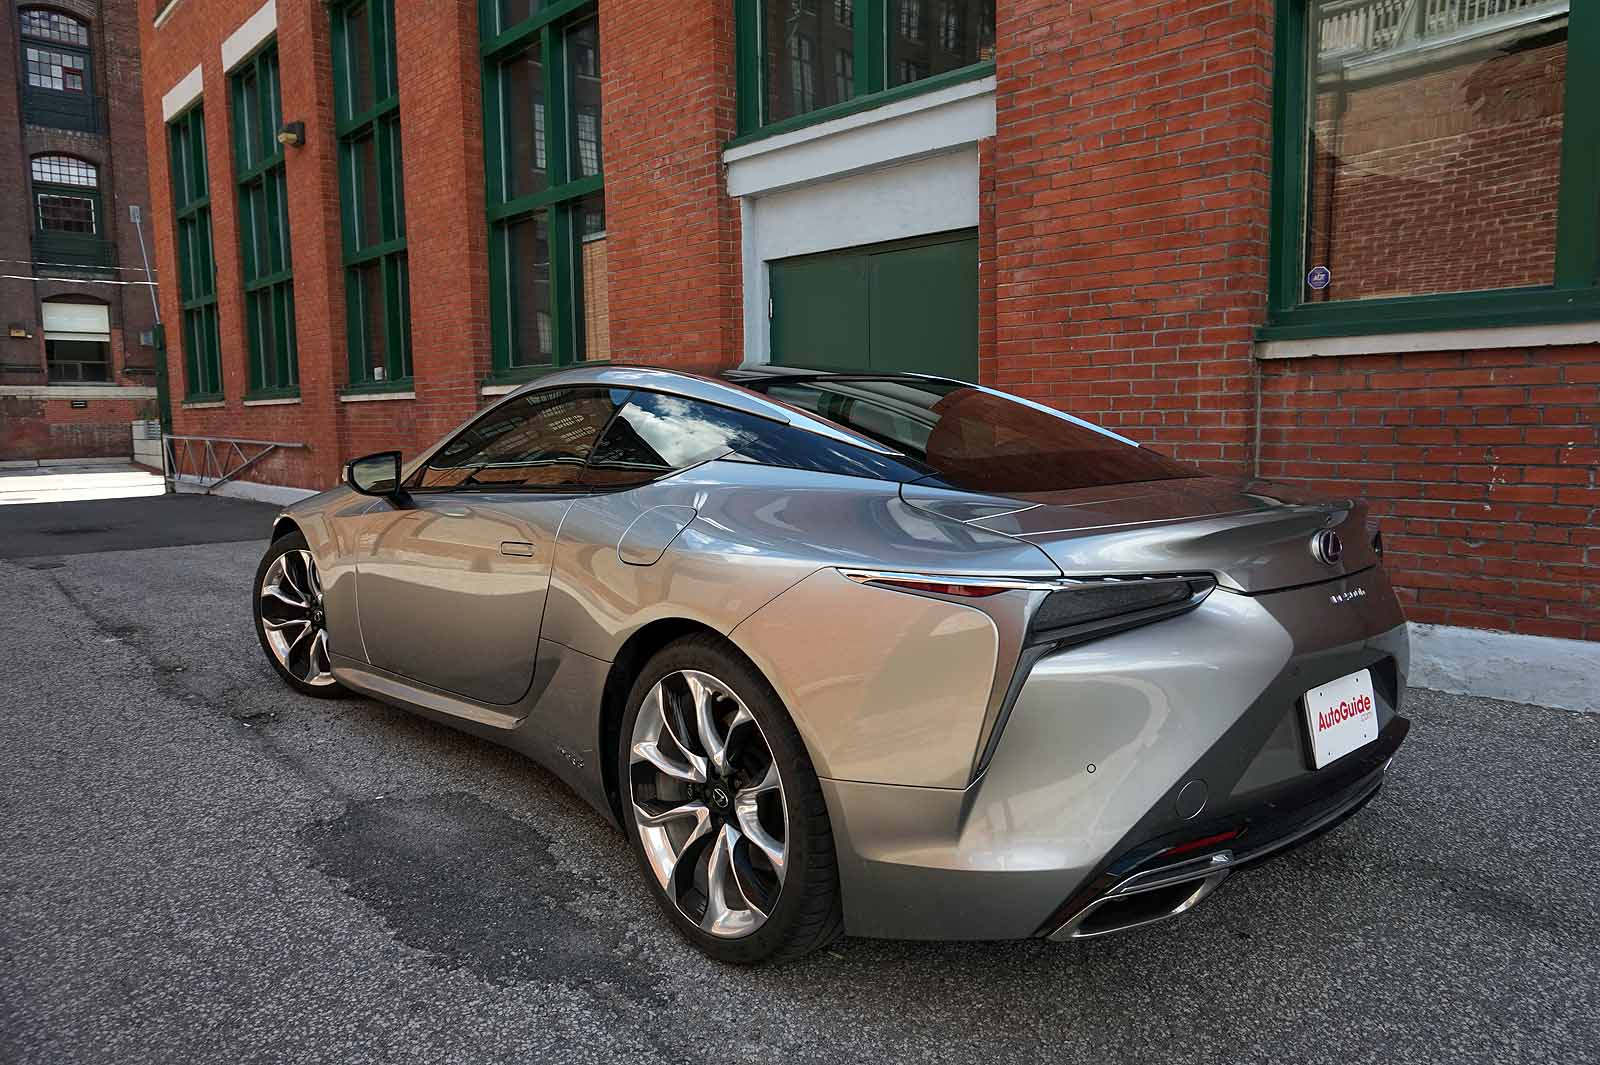 2018 lexus lc 500h new car release date and review 2018 amanda felicia. Black Bedroom Furniture Sets. Home Design Ideas